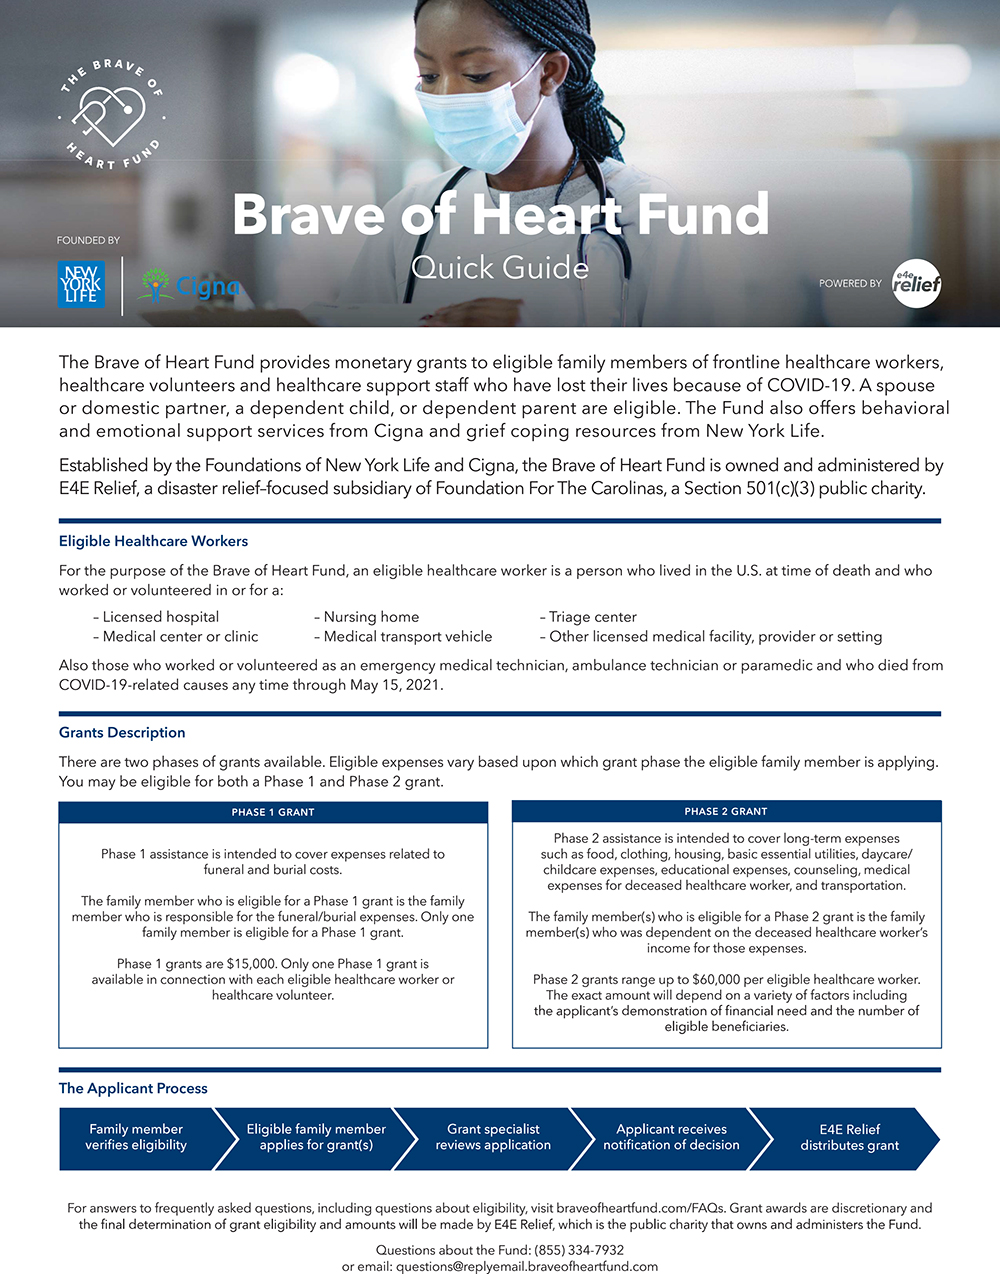 Brave of Heart Fund- Quick Guide